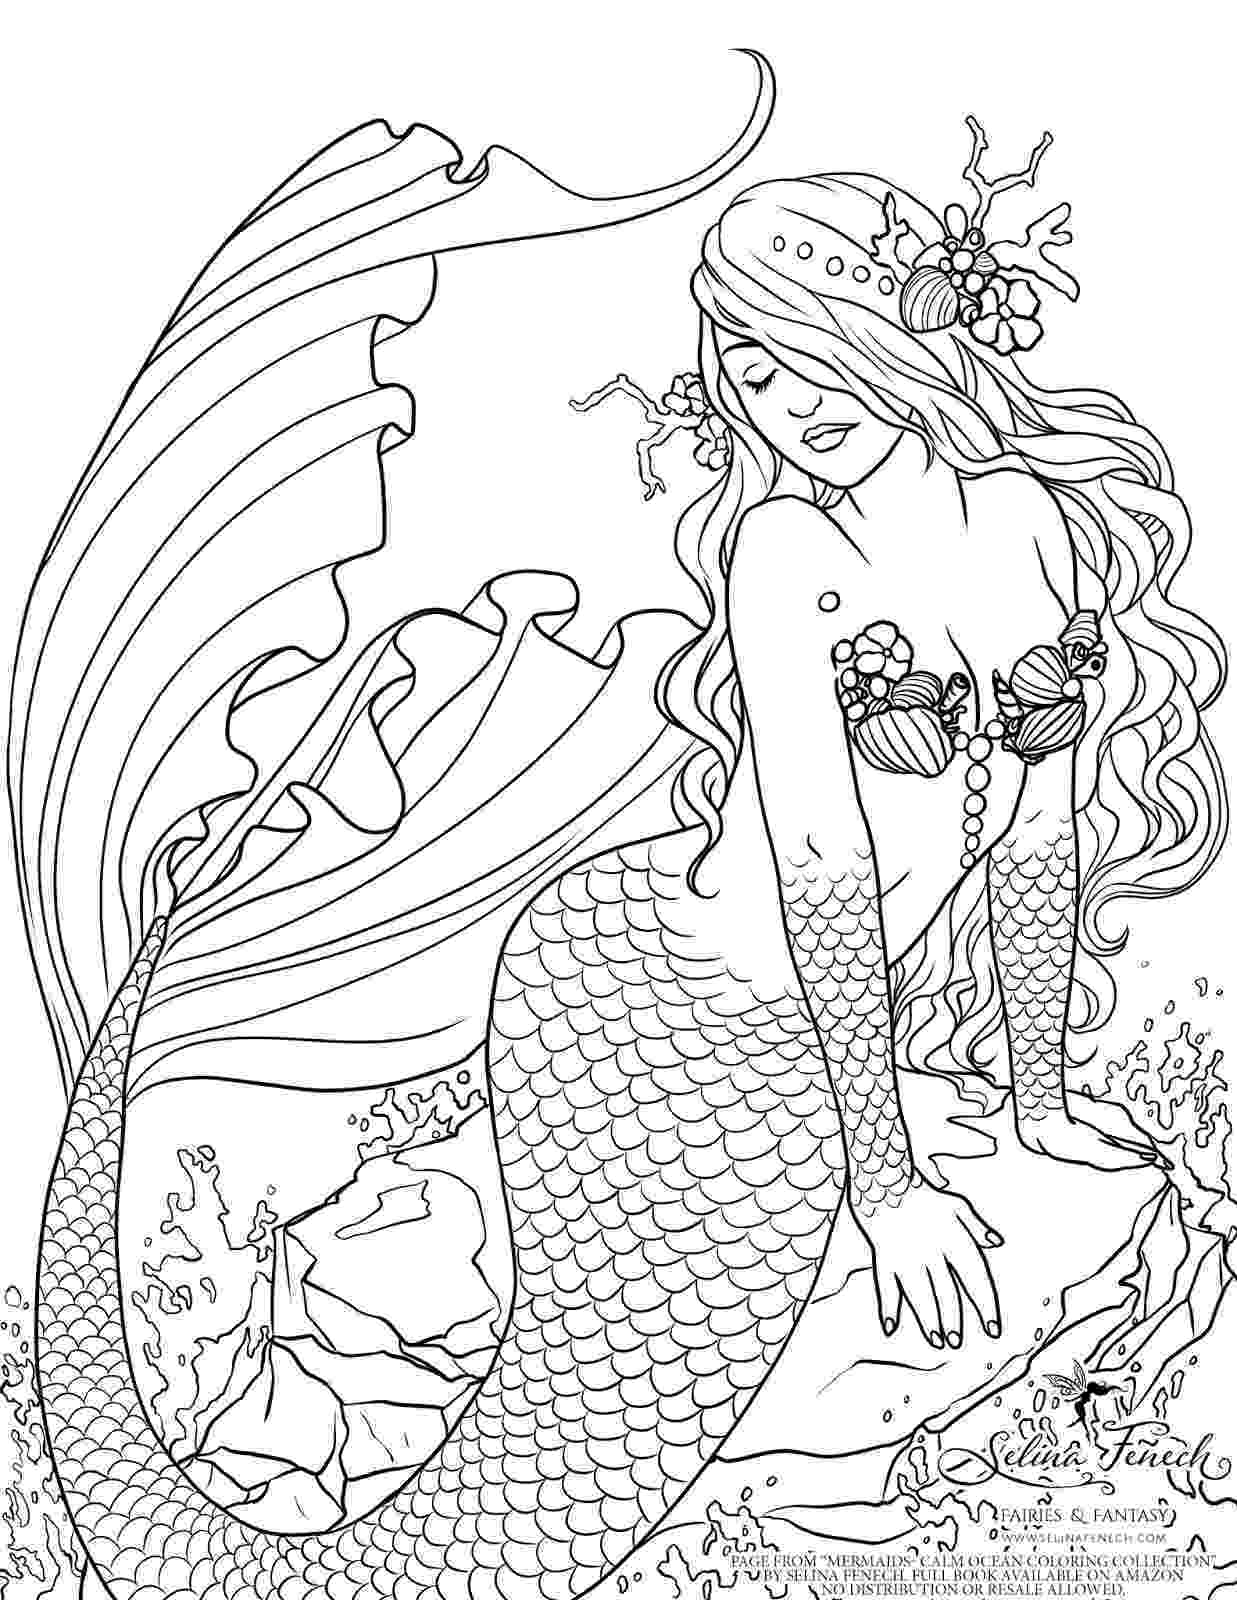 mermaid coloring 30 stunning mermaid coloring pages coloring mermaid